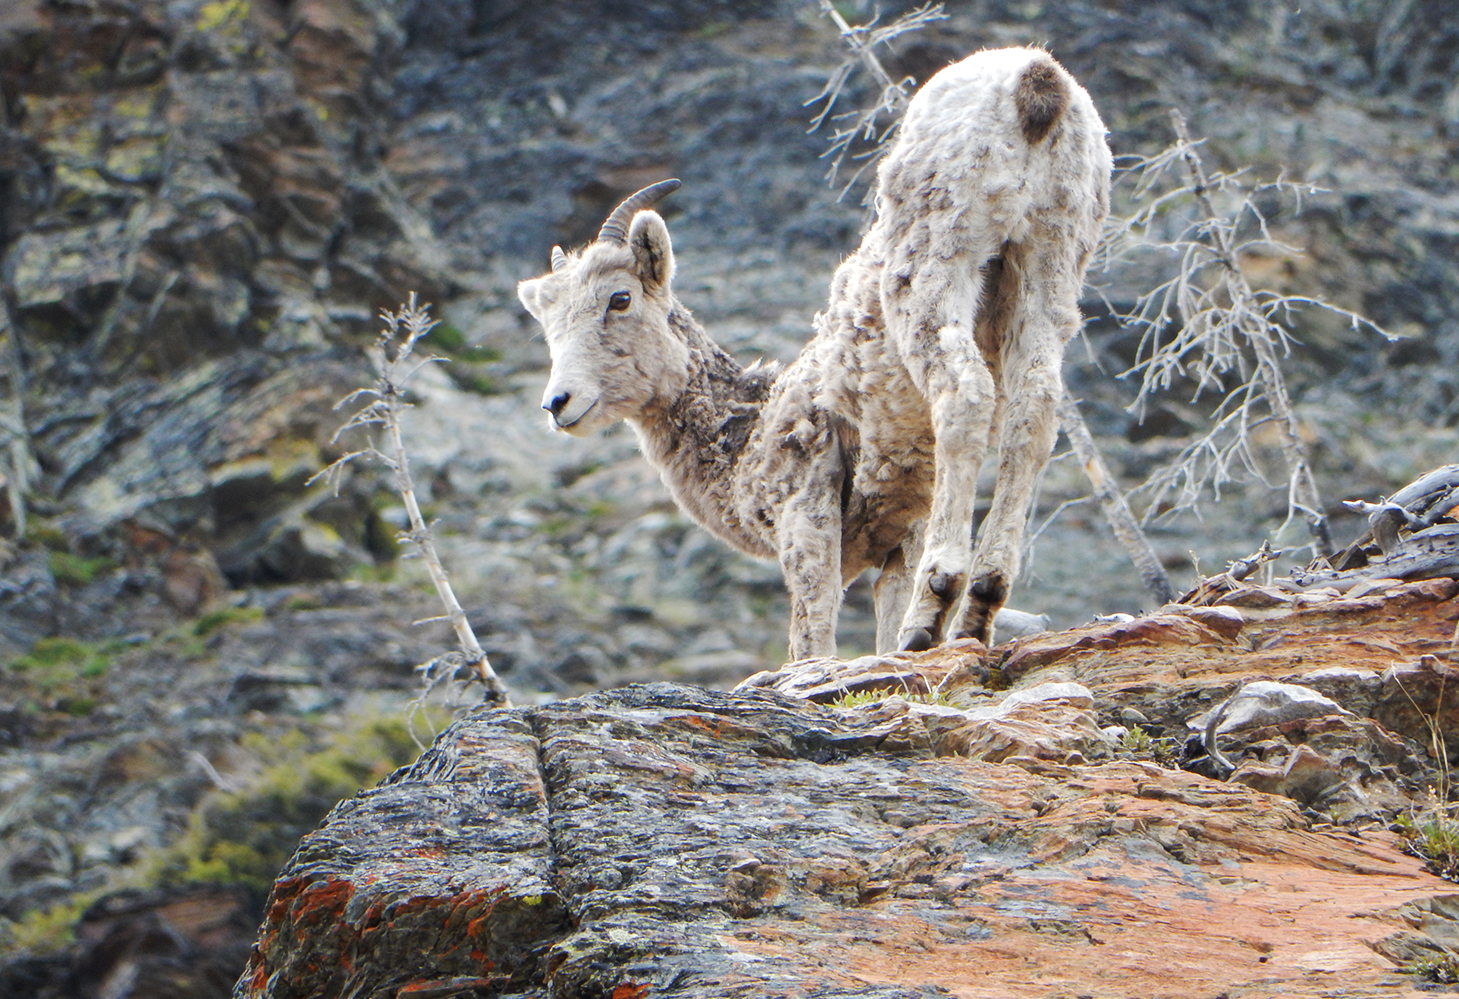 A bighorn stands on the edge of a cliff face